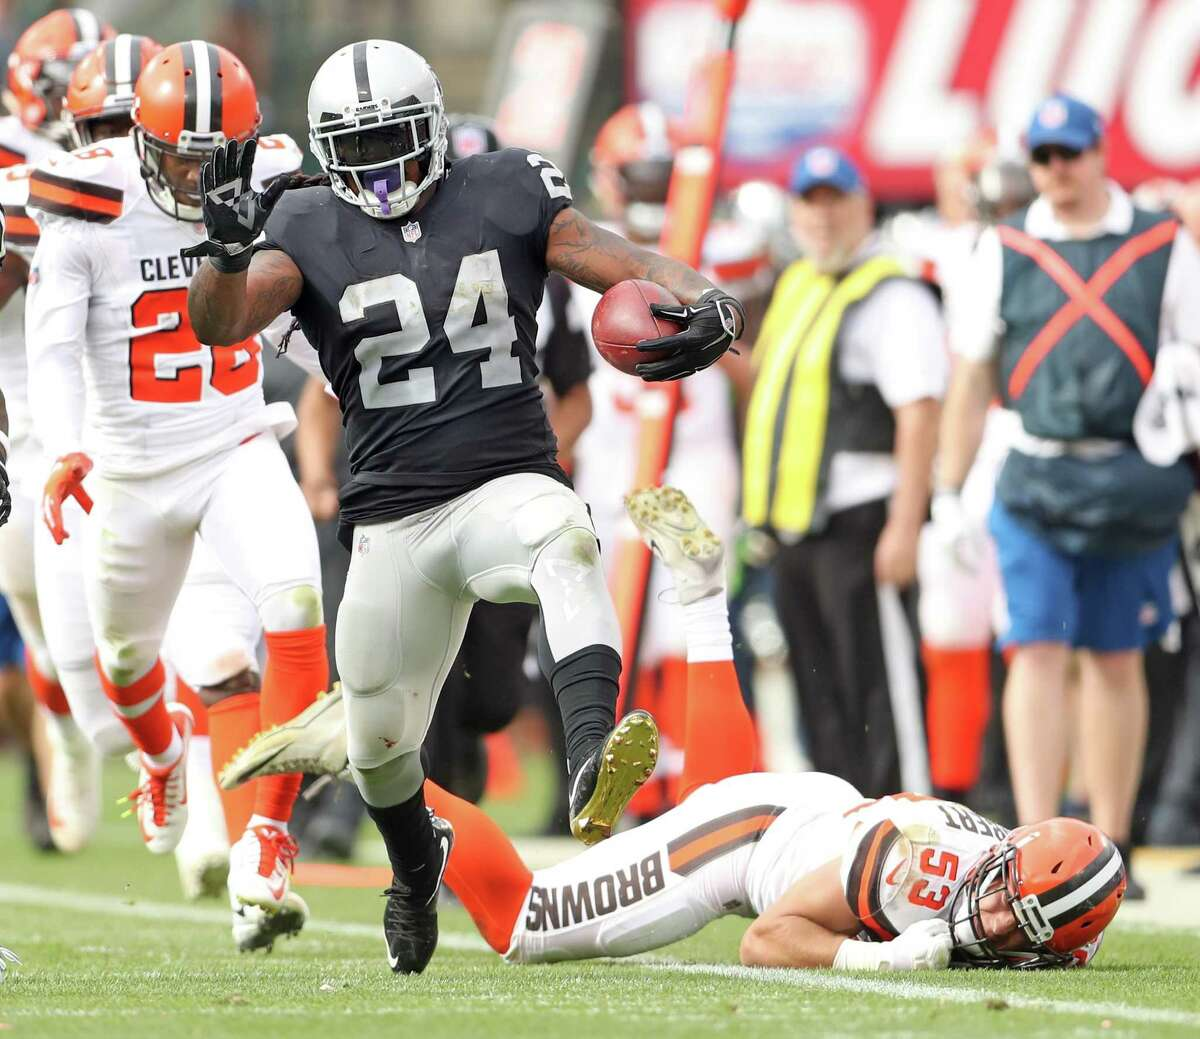 Oakland Raiders' Marshawn Lynch during his 52-yard run in 3rd quarter of 45-42 overtime win over Cleveland Browns during NFL game at Oakland Coliseum in Oakland, Calif. on Sunday, September 30, 2018.